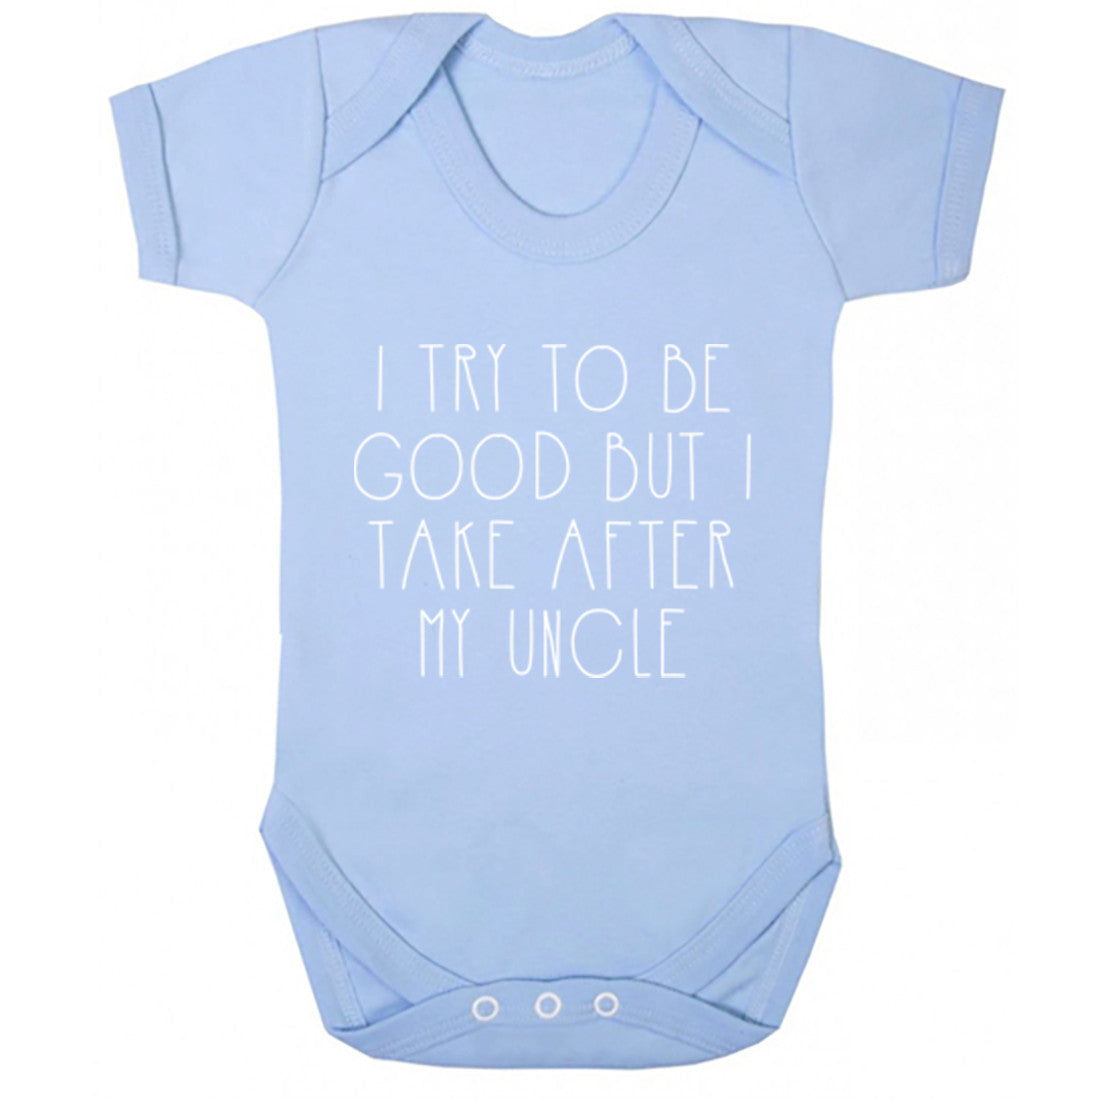 I Try To Be Good But I Take After My Uncle Baby Vest K1534 - Illustrated Identity Ltd.